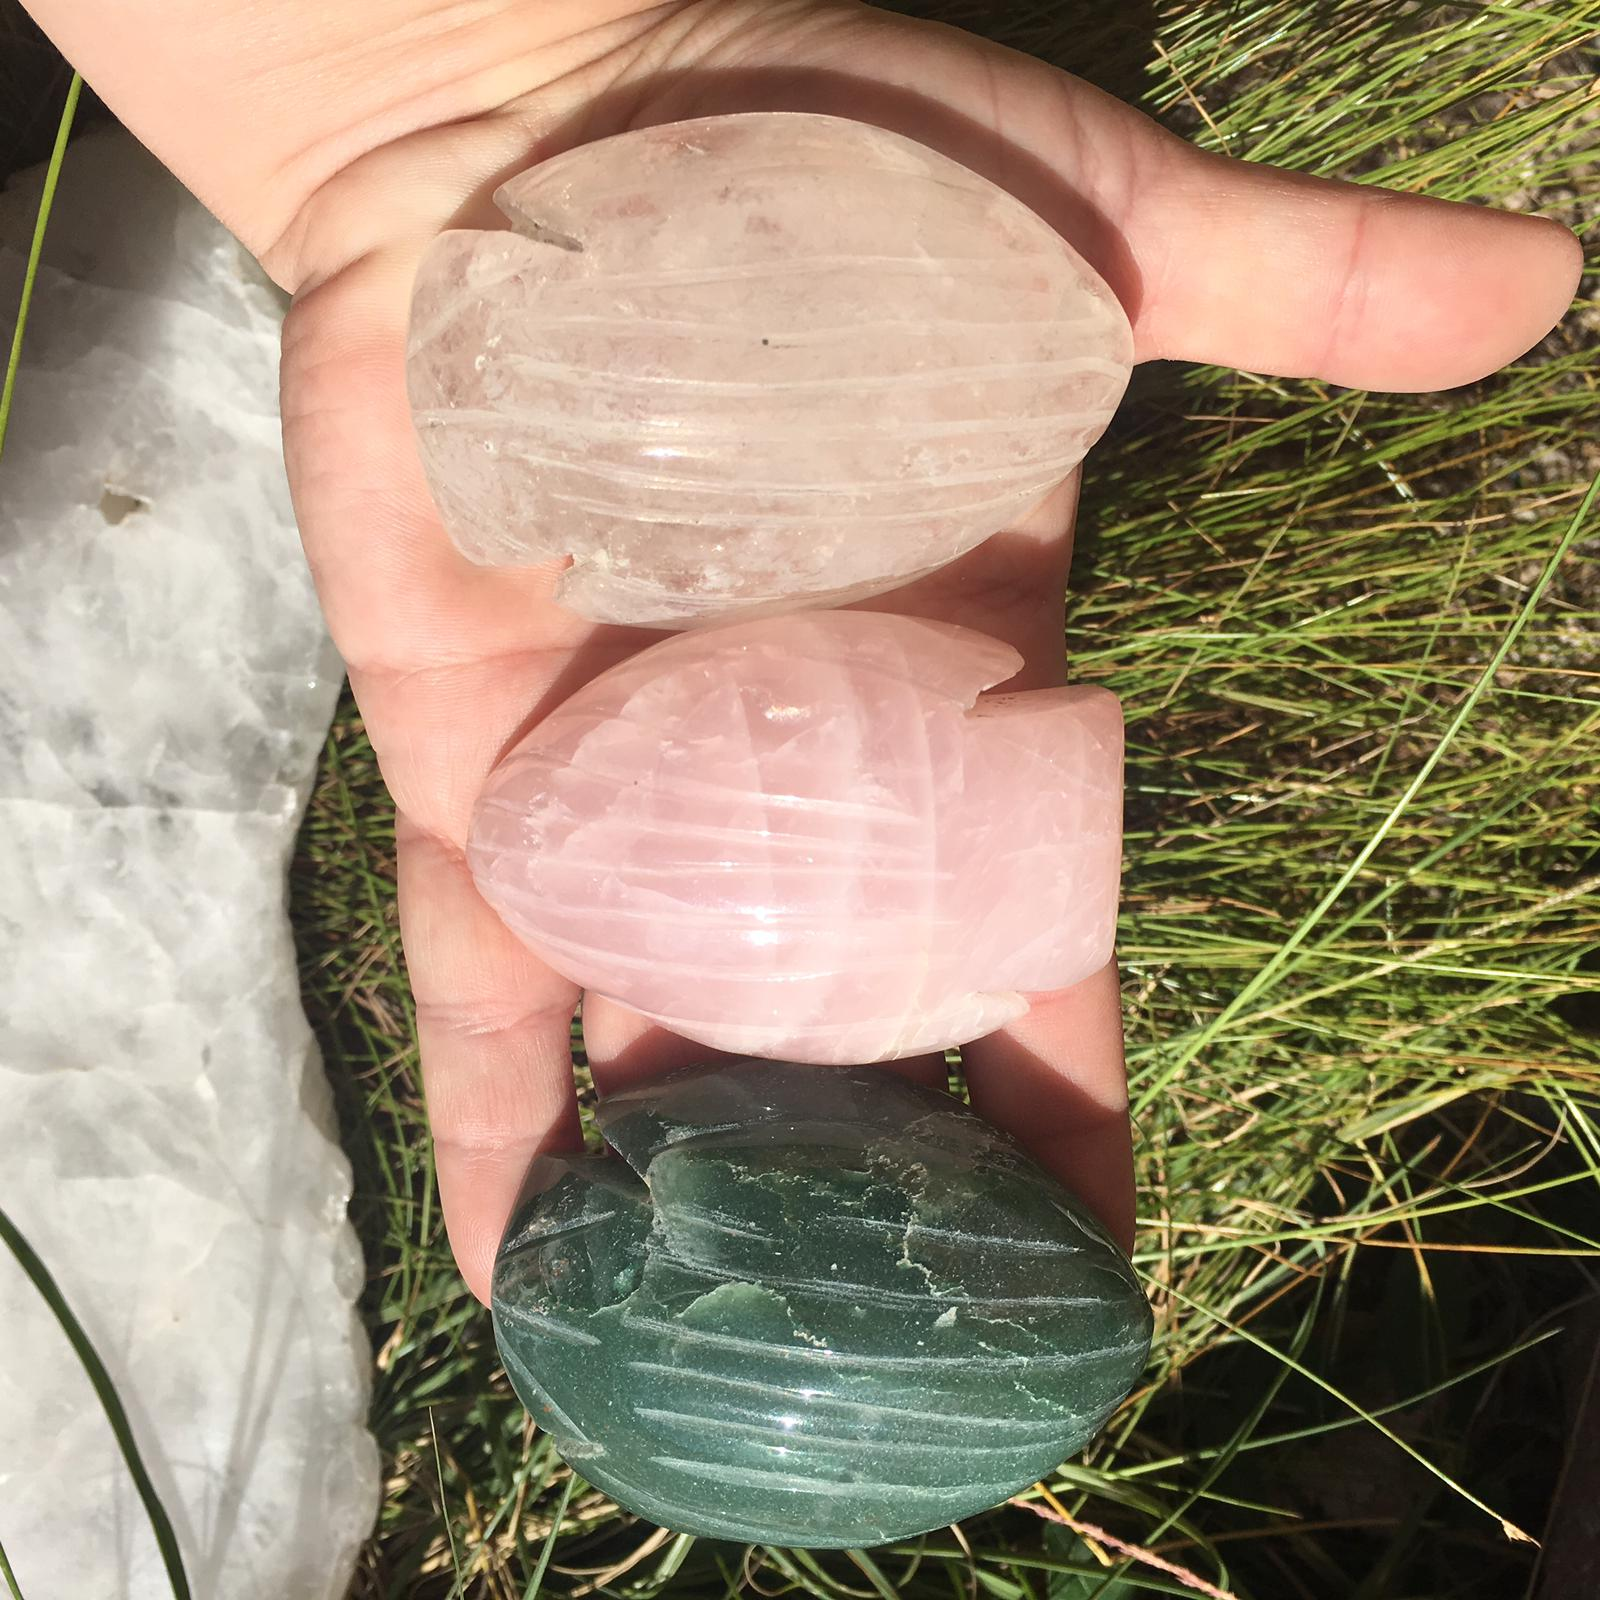 Stones from Uruguay - Rose Quartz Fish Cabochon  - Clear Quartz Fish Cabochon -  Green Quartz Fish Cabochon